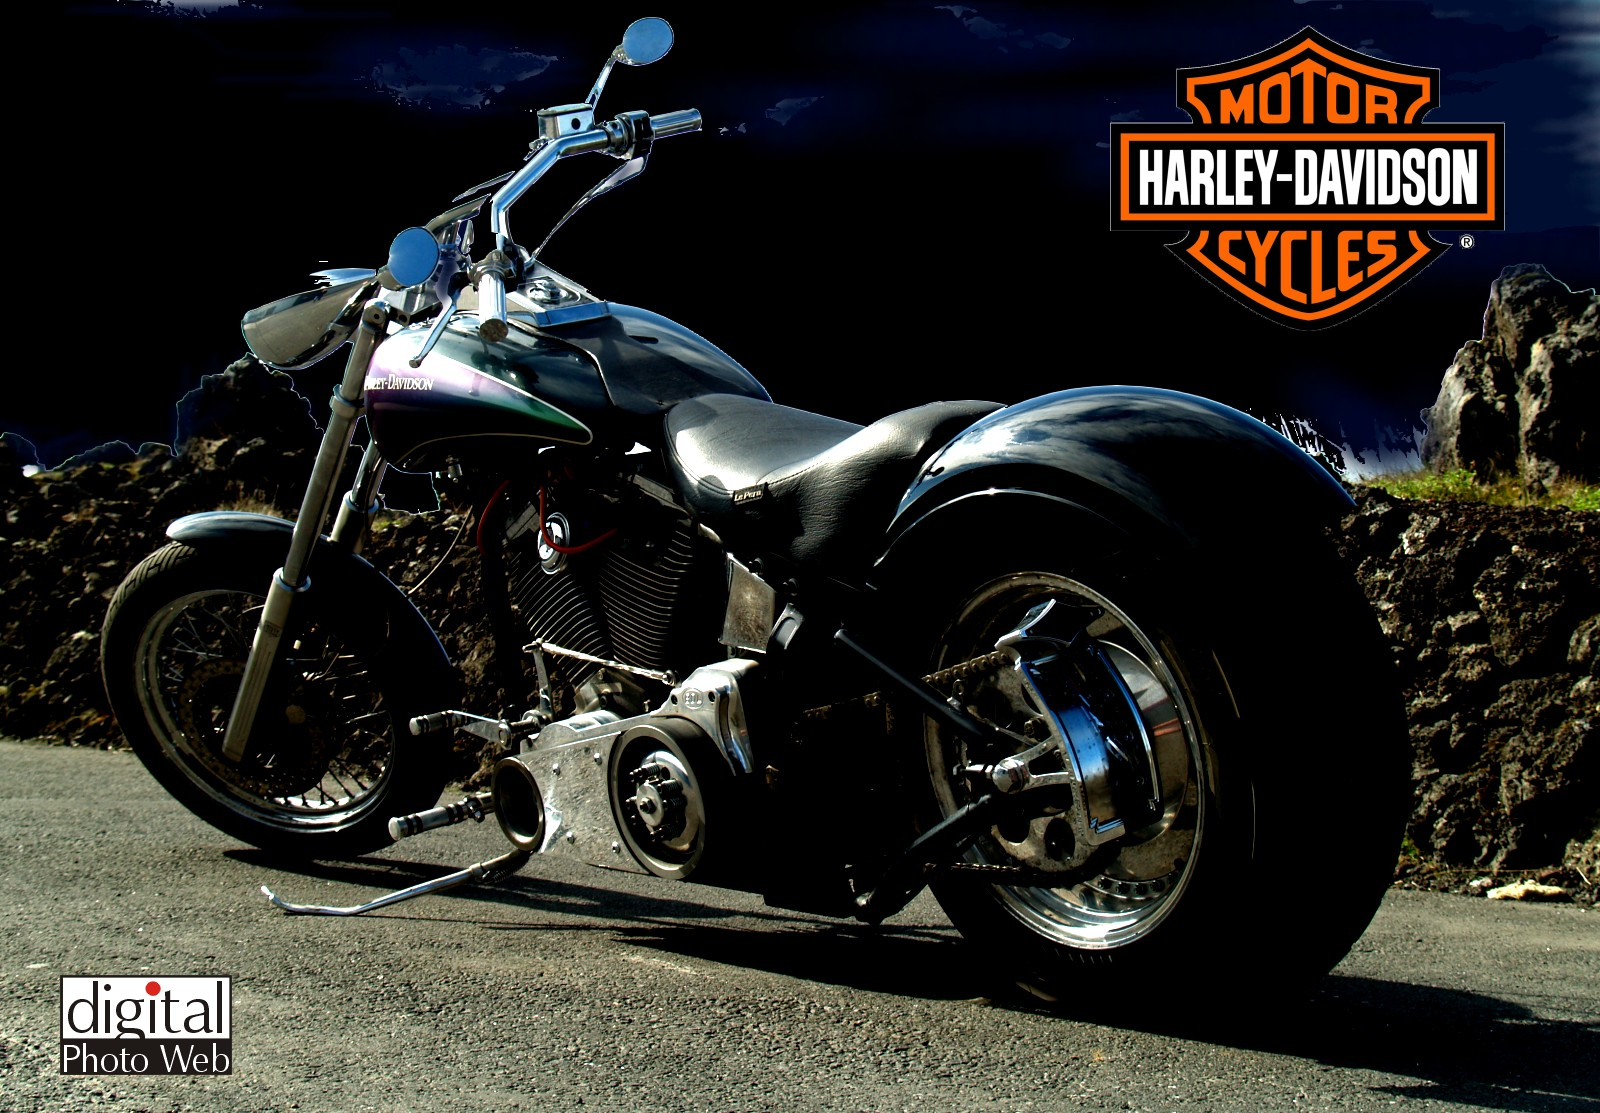 Harley Davidson Bikes Wallpapers HD Harley Davidson Bikes Wallpapers 1600x1113